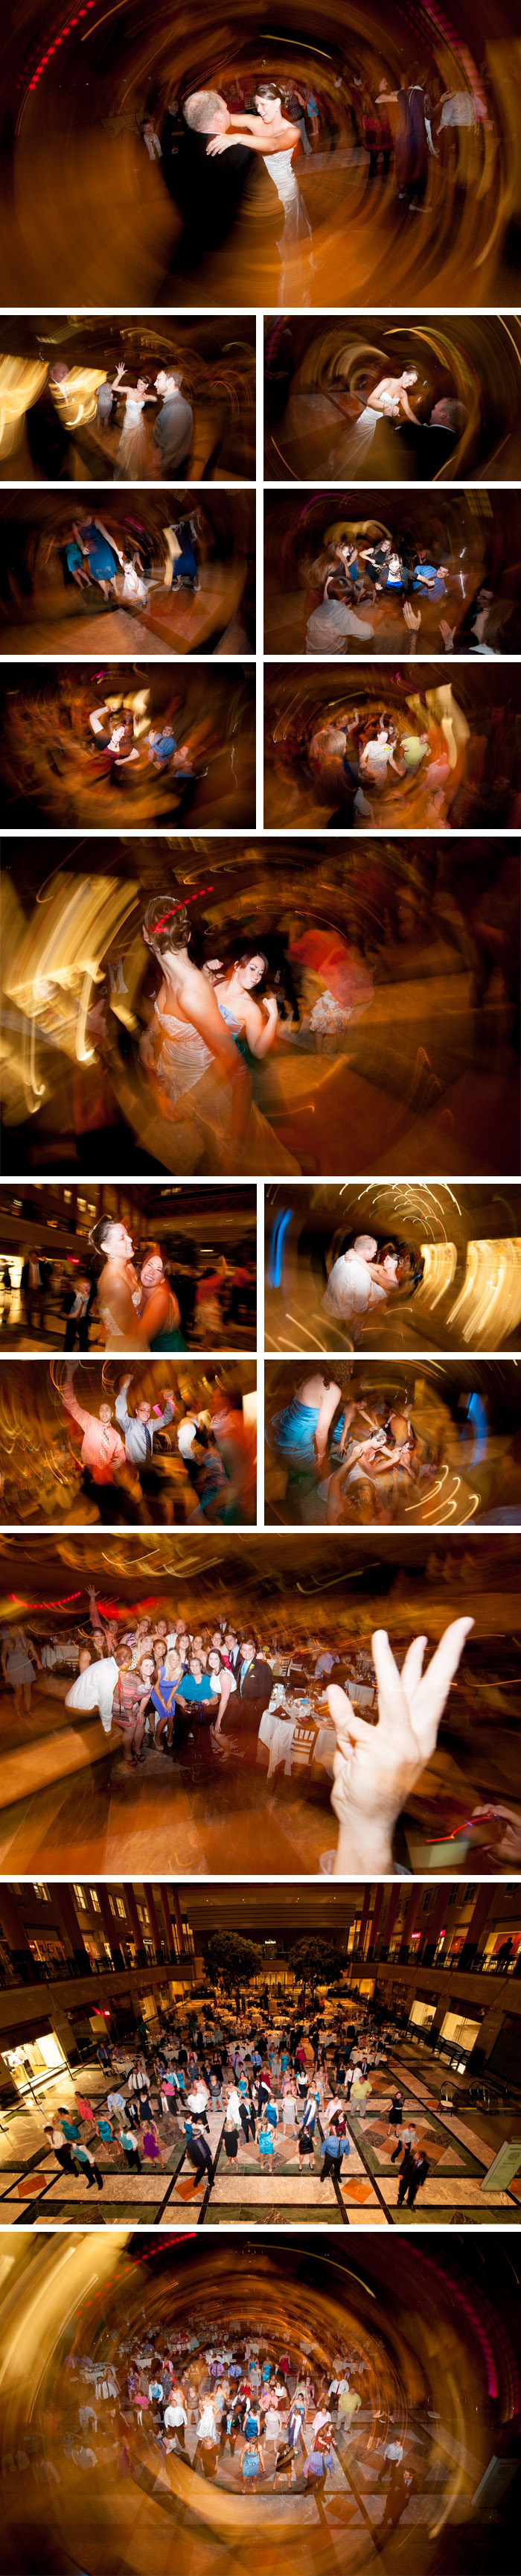 dancing1 2 Rebecca + Blair | Charlotte, NC Wedding